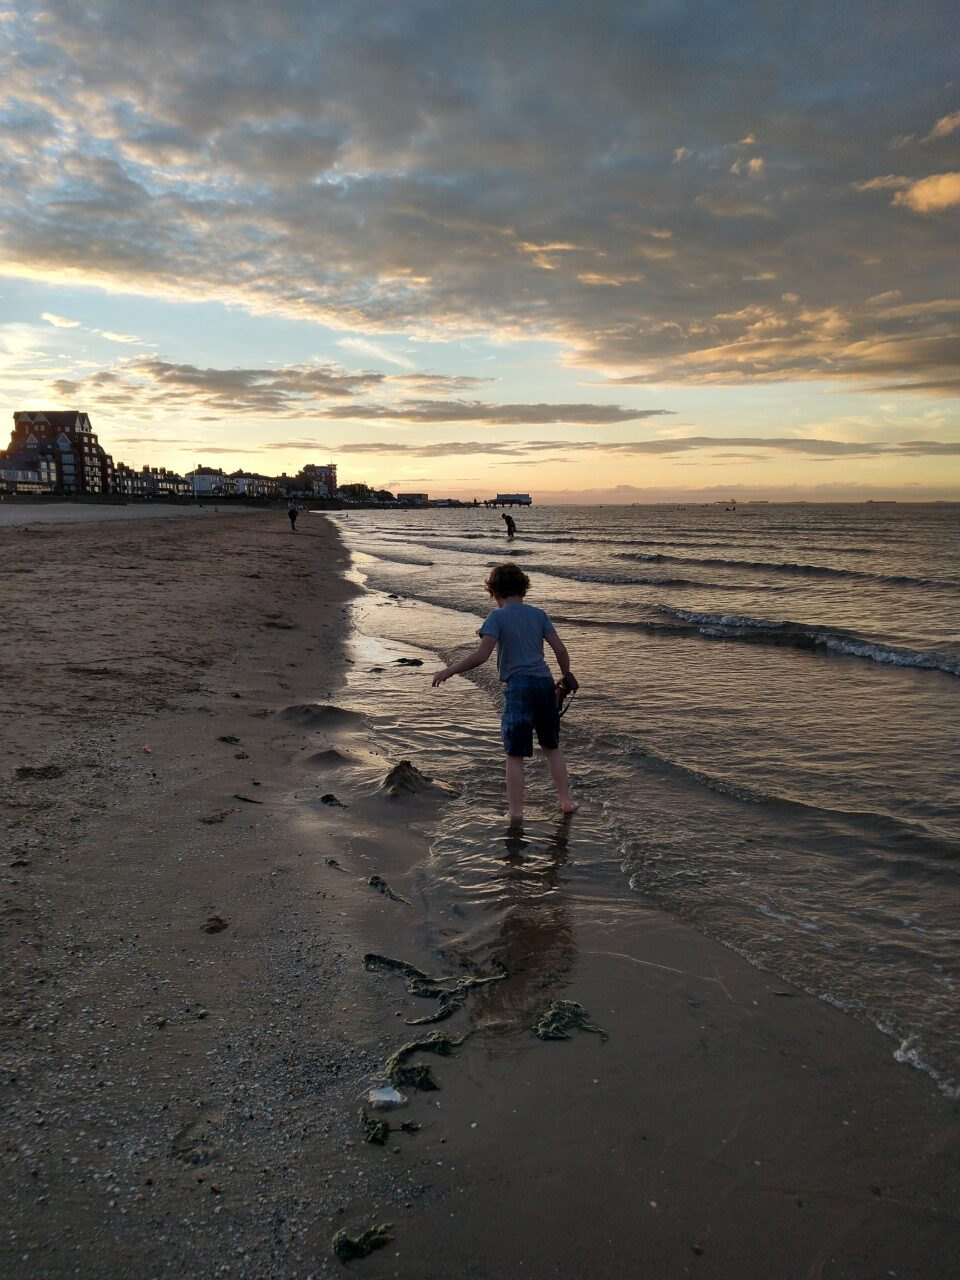 A sunset walk on a beach at Cleethorpes